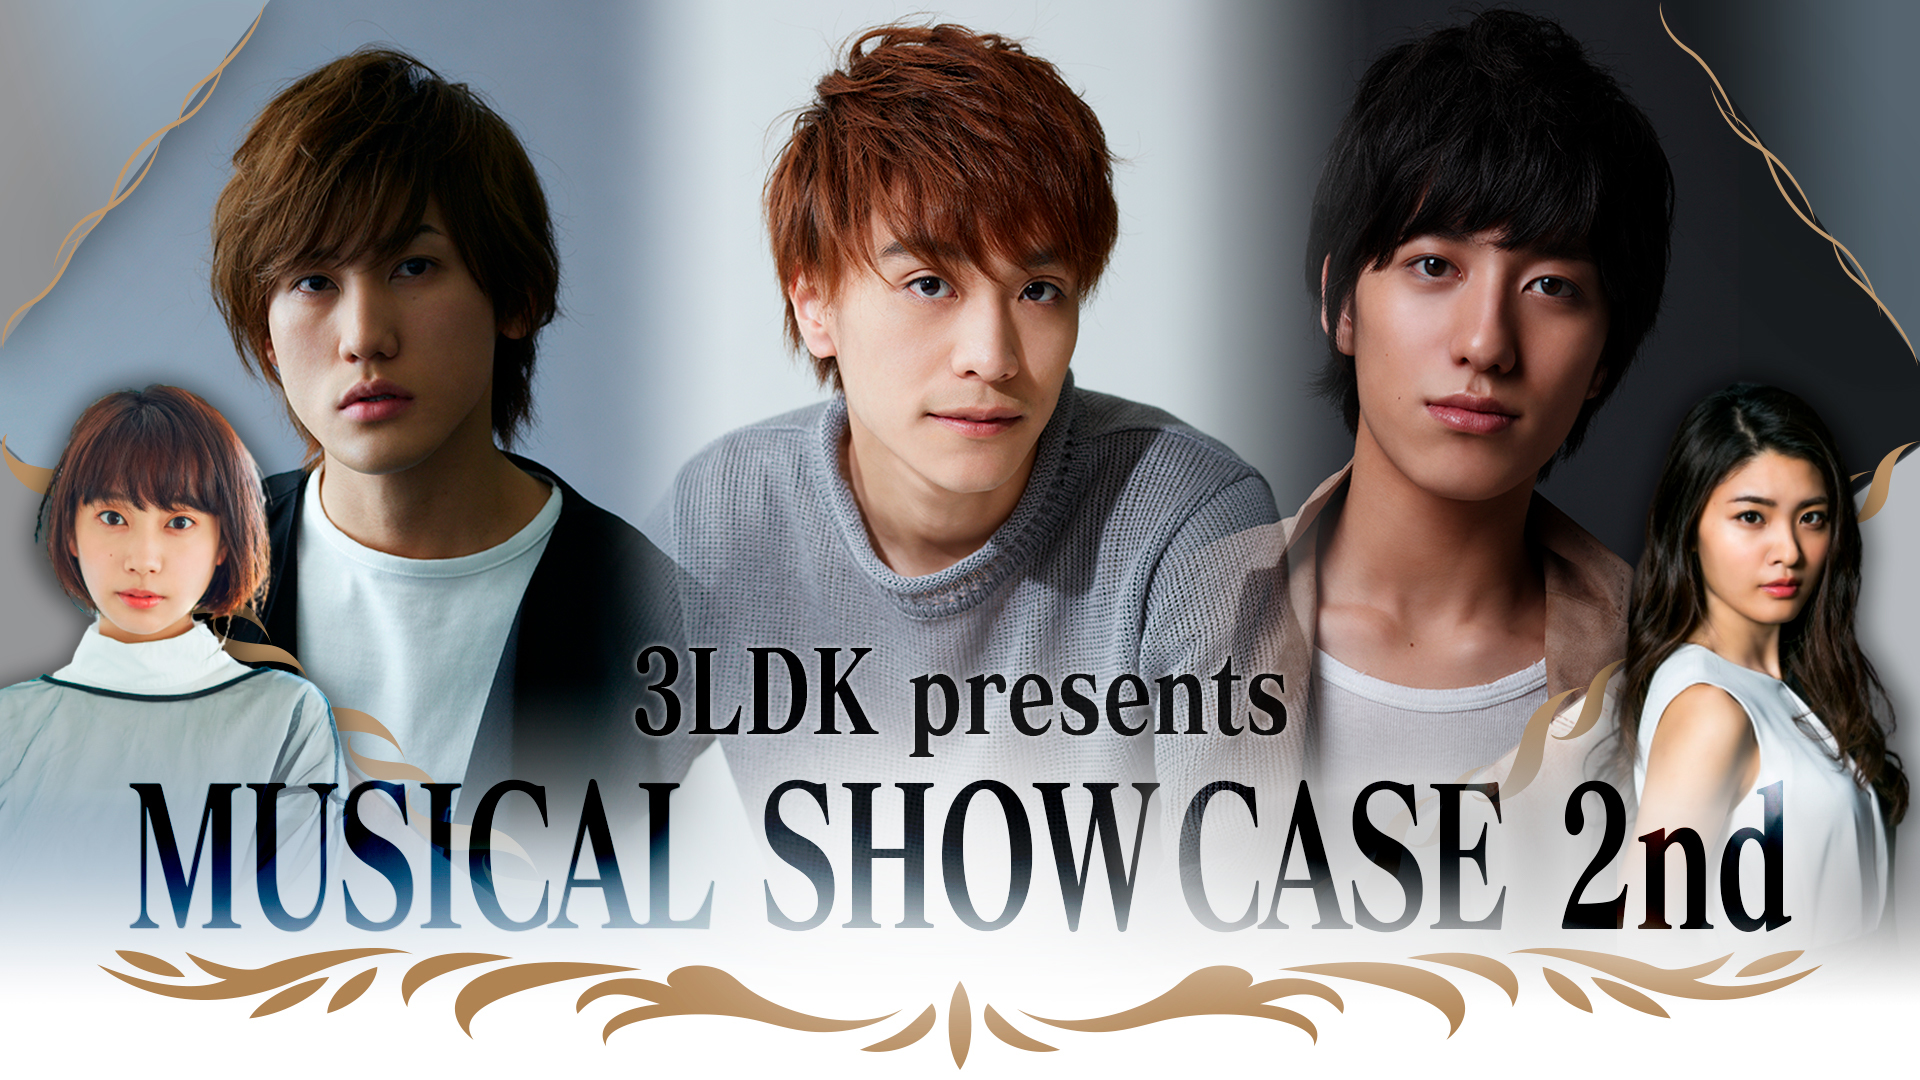 3LDK presents MUSICAL SHOWCASE 2nd